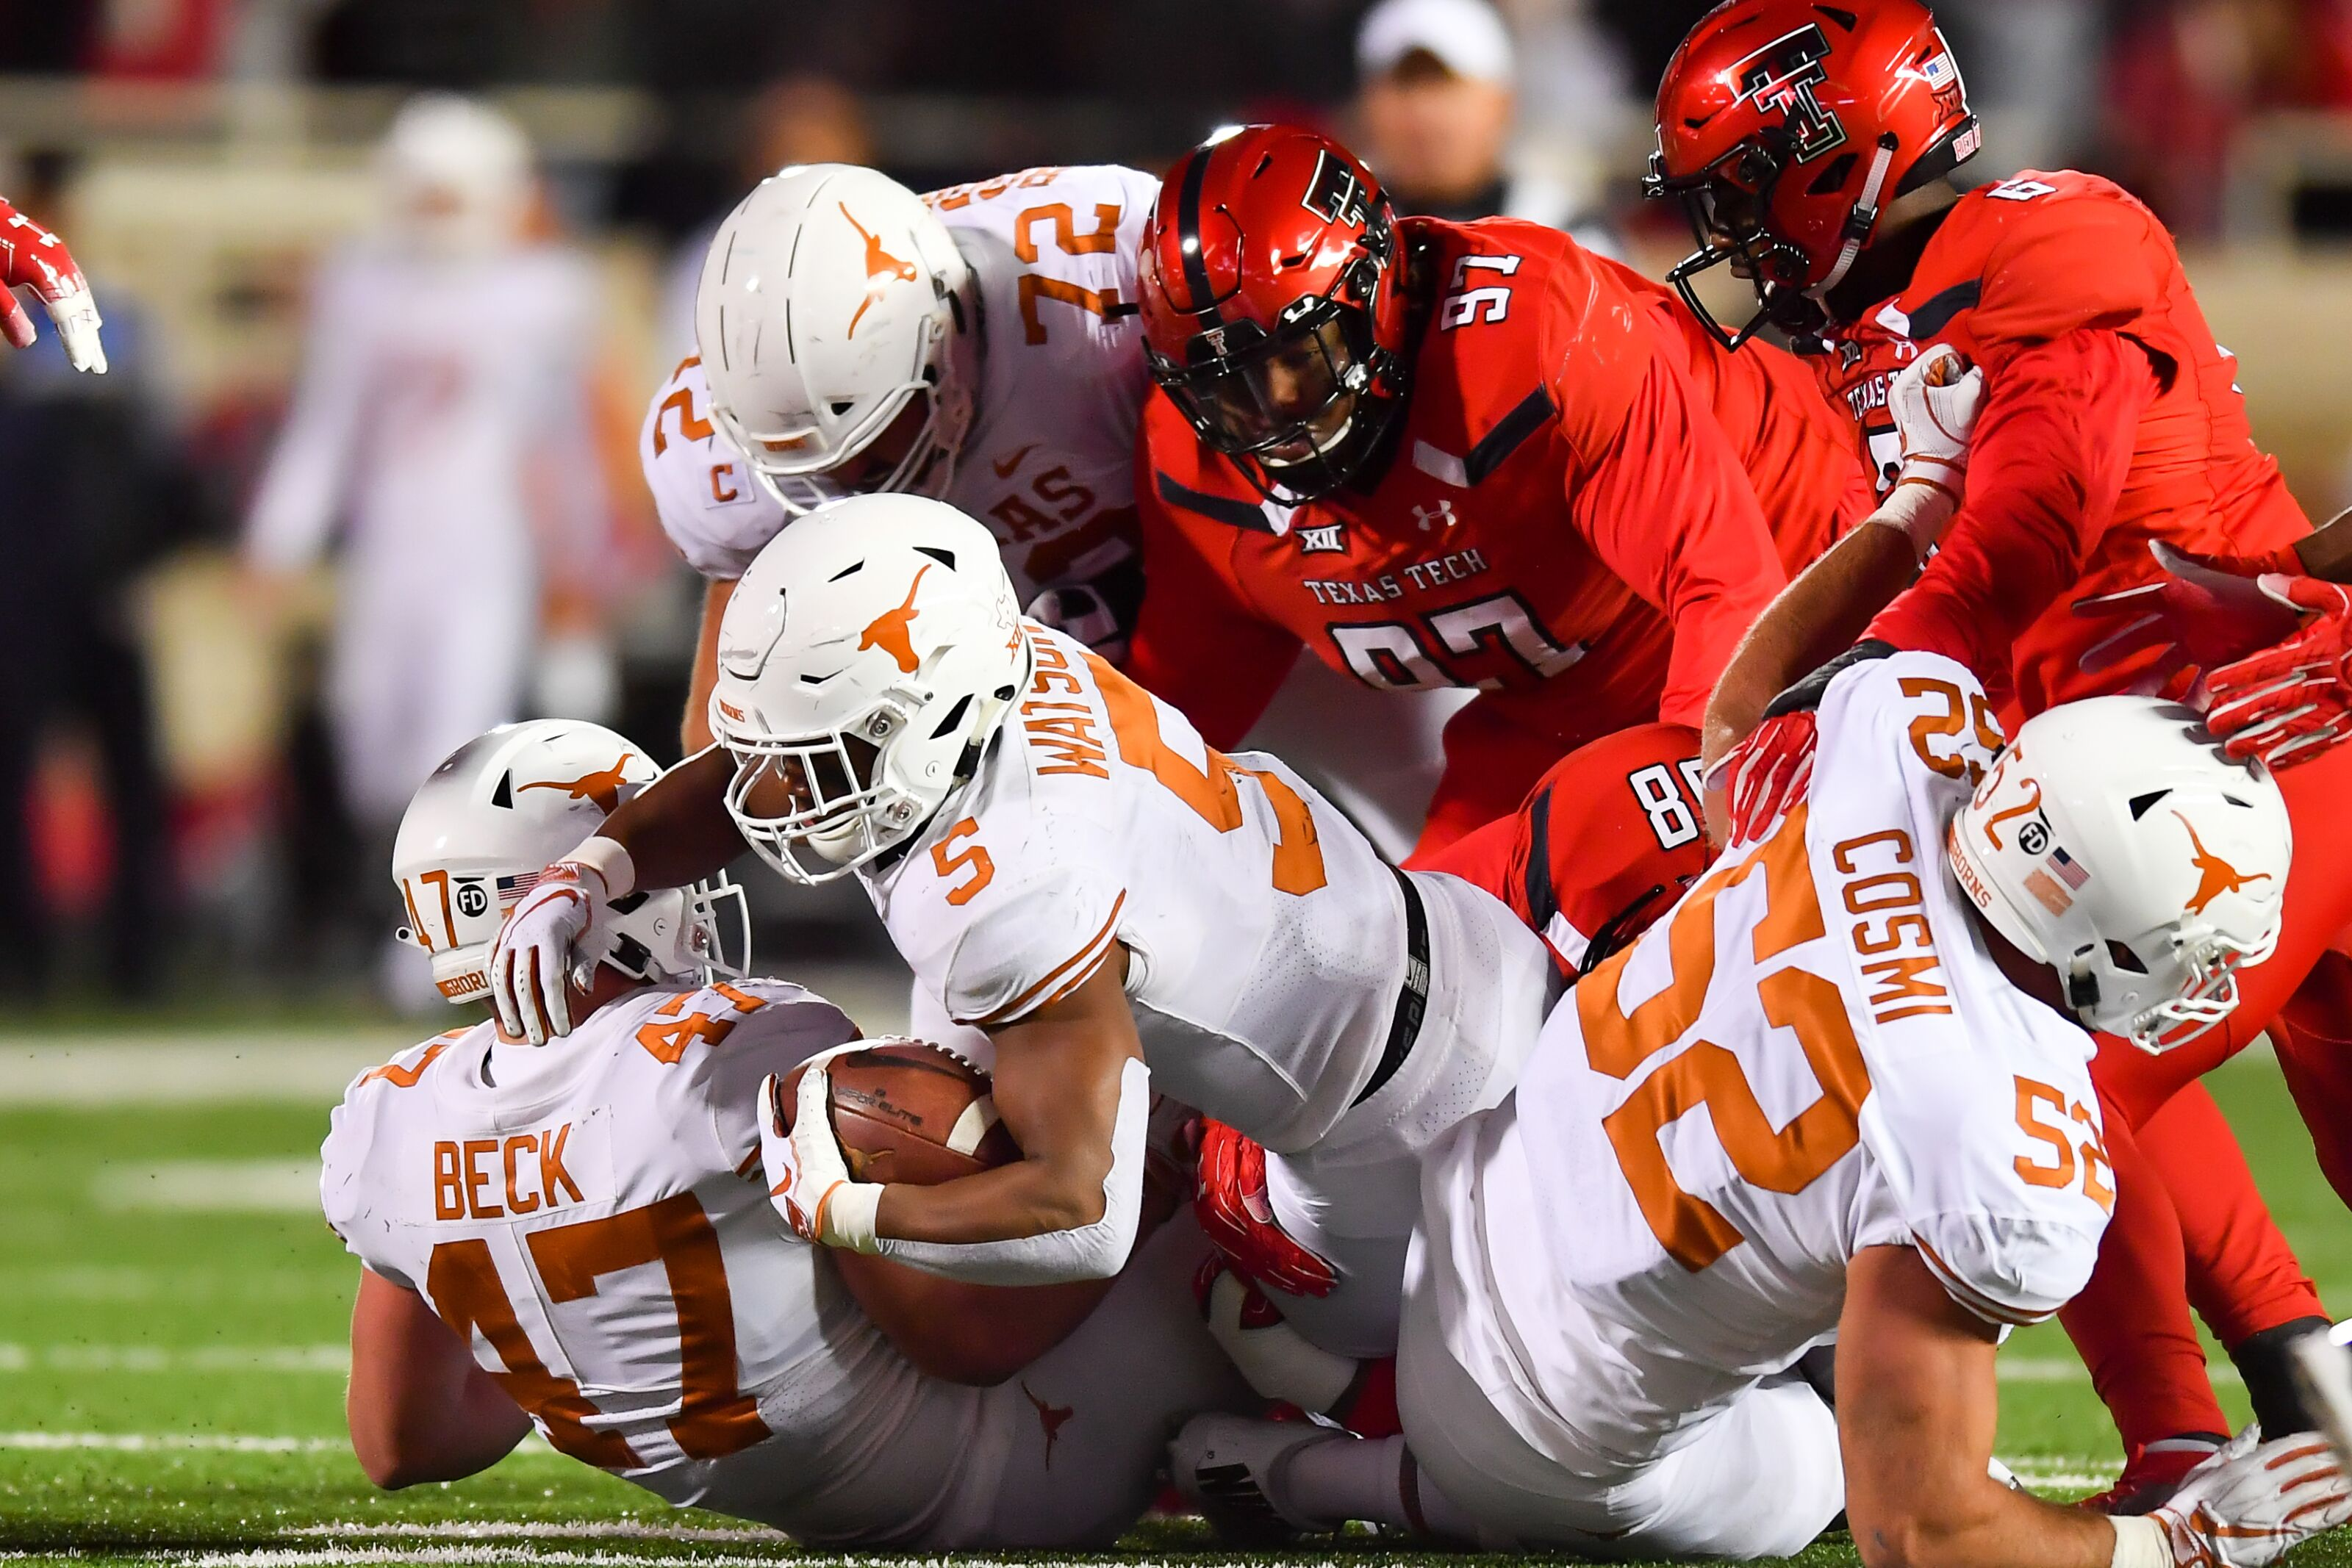 Texas Football: Takeaways from enlivening road victory over Texas Tech